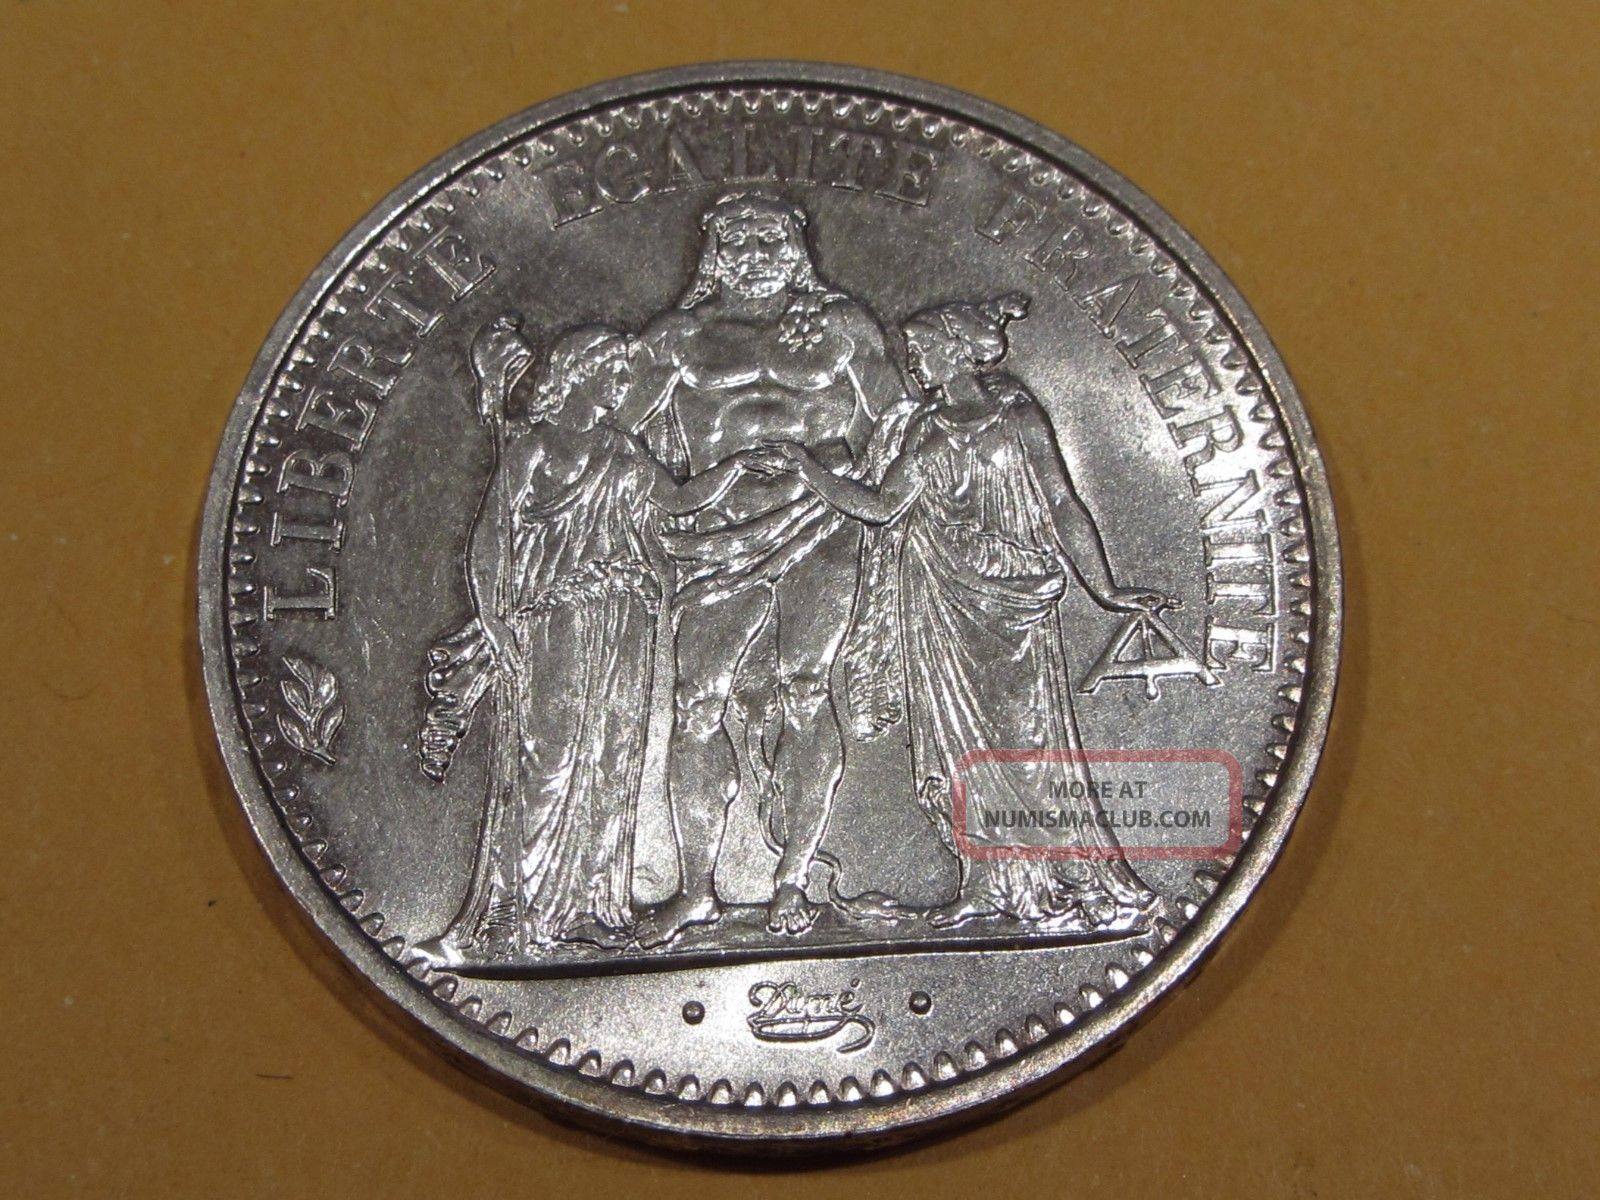 France 1967 Bu 10 Francs Silver Dollar Size Coin France photo